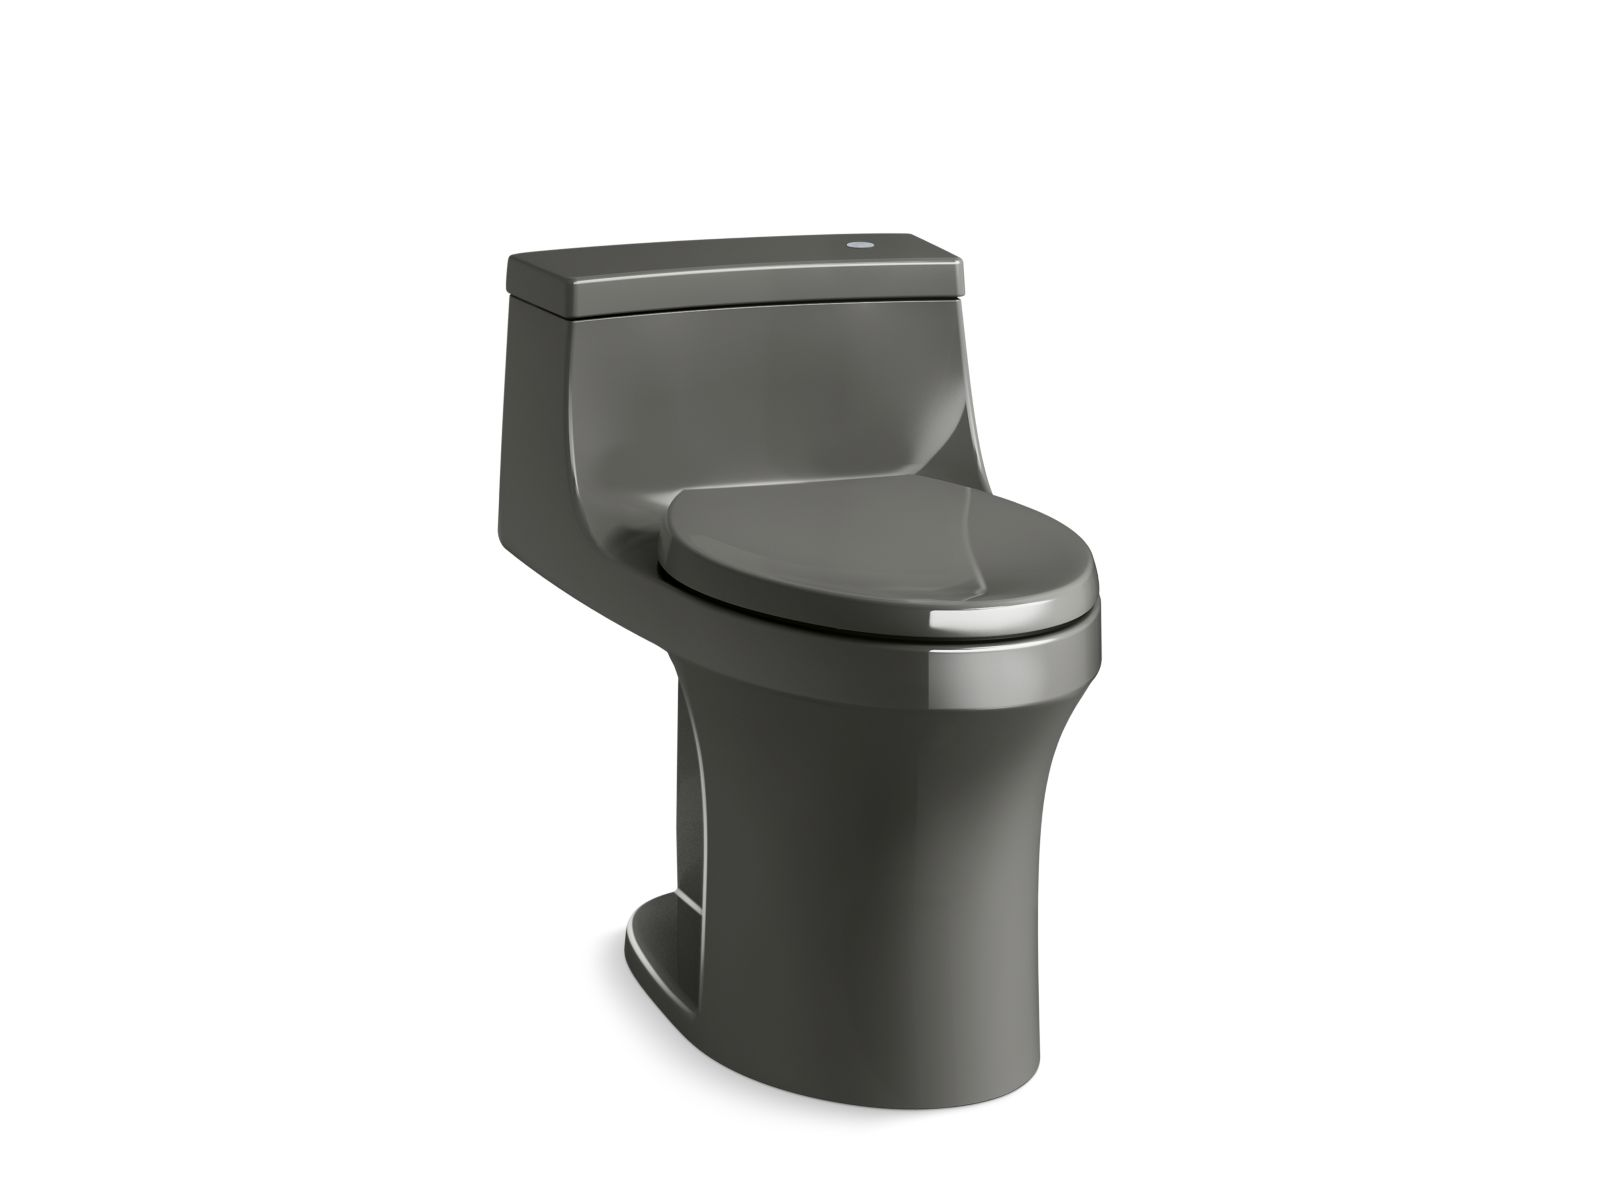 Kohler San Souci™ K-4000-58 Touchless Comfort Height® one-piece compact elongated 1.28 gpf toilet with AquaPiston® flushing technology Thunder Grey